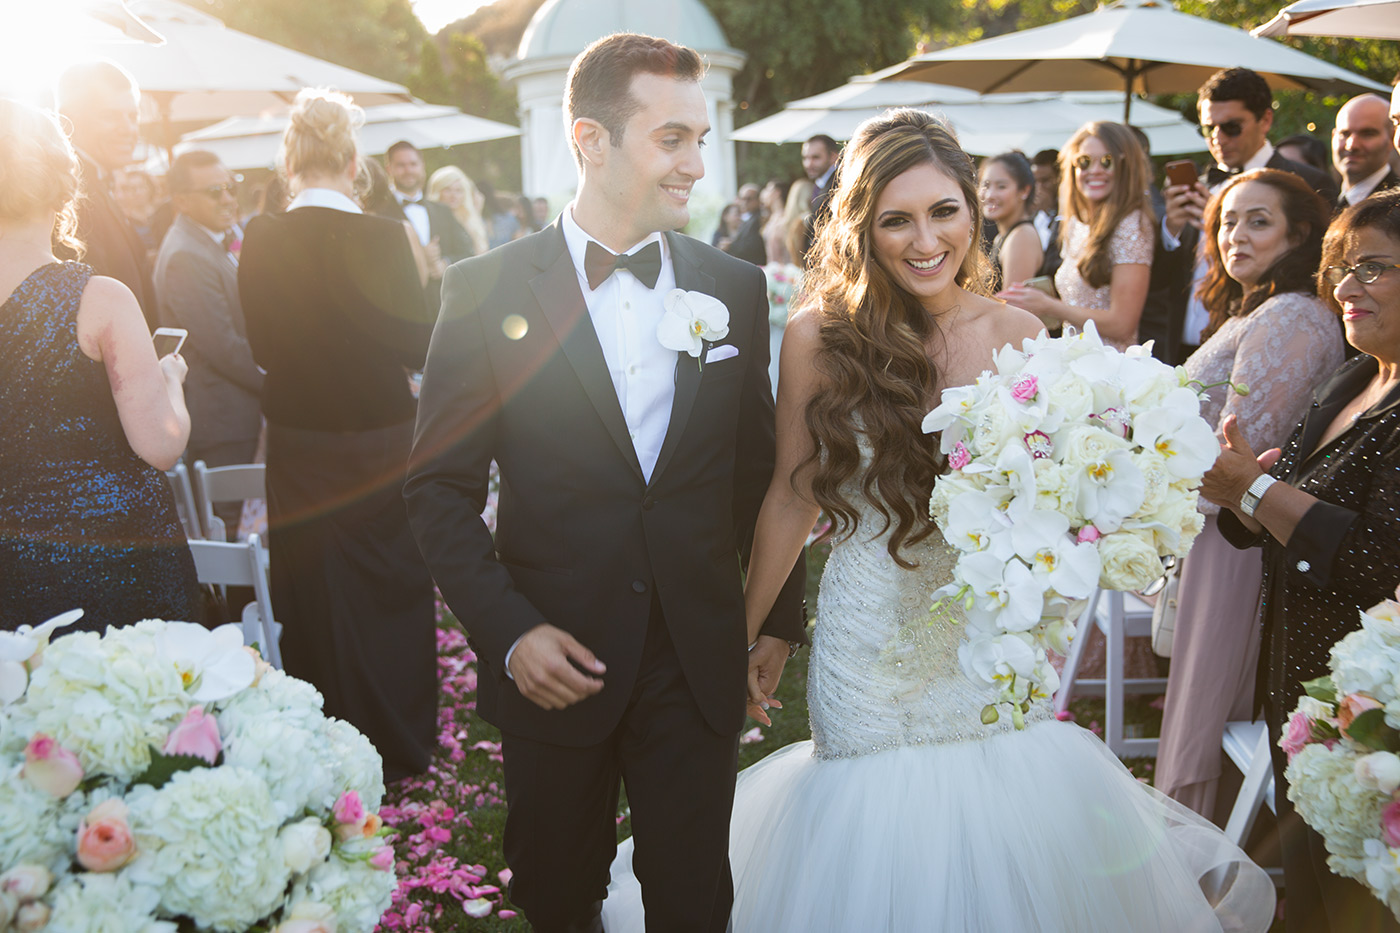 Bride and groom after their Silver creek valley country club wedding ceremony in san jose